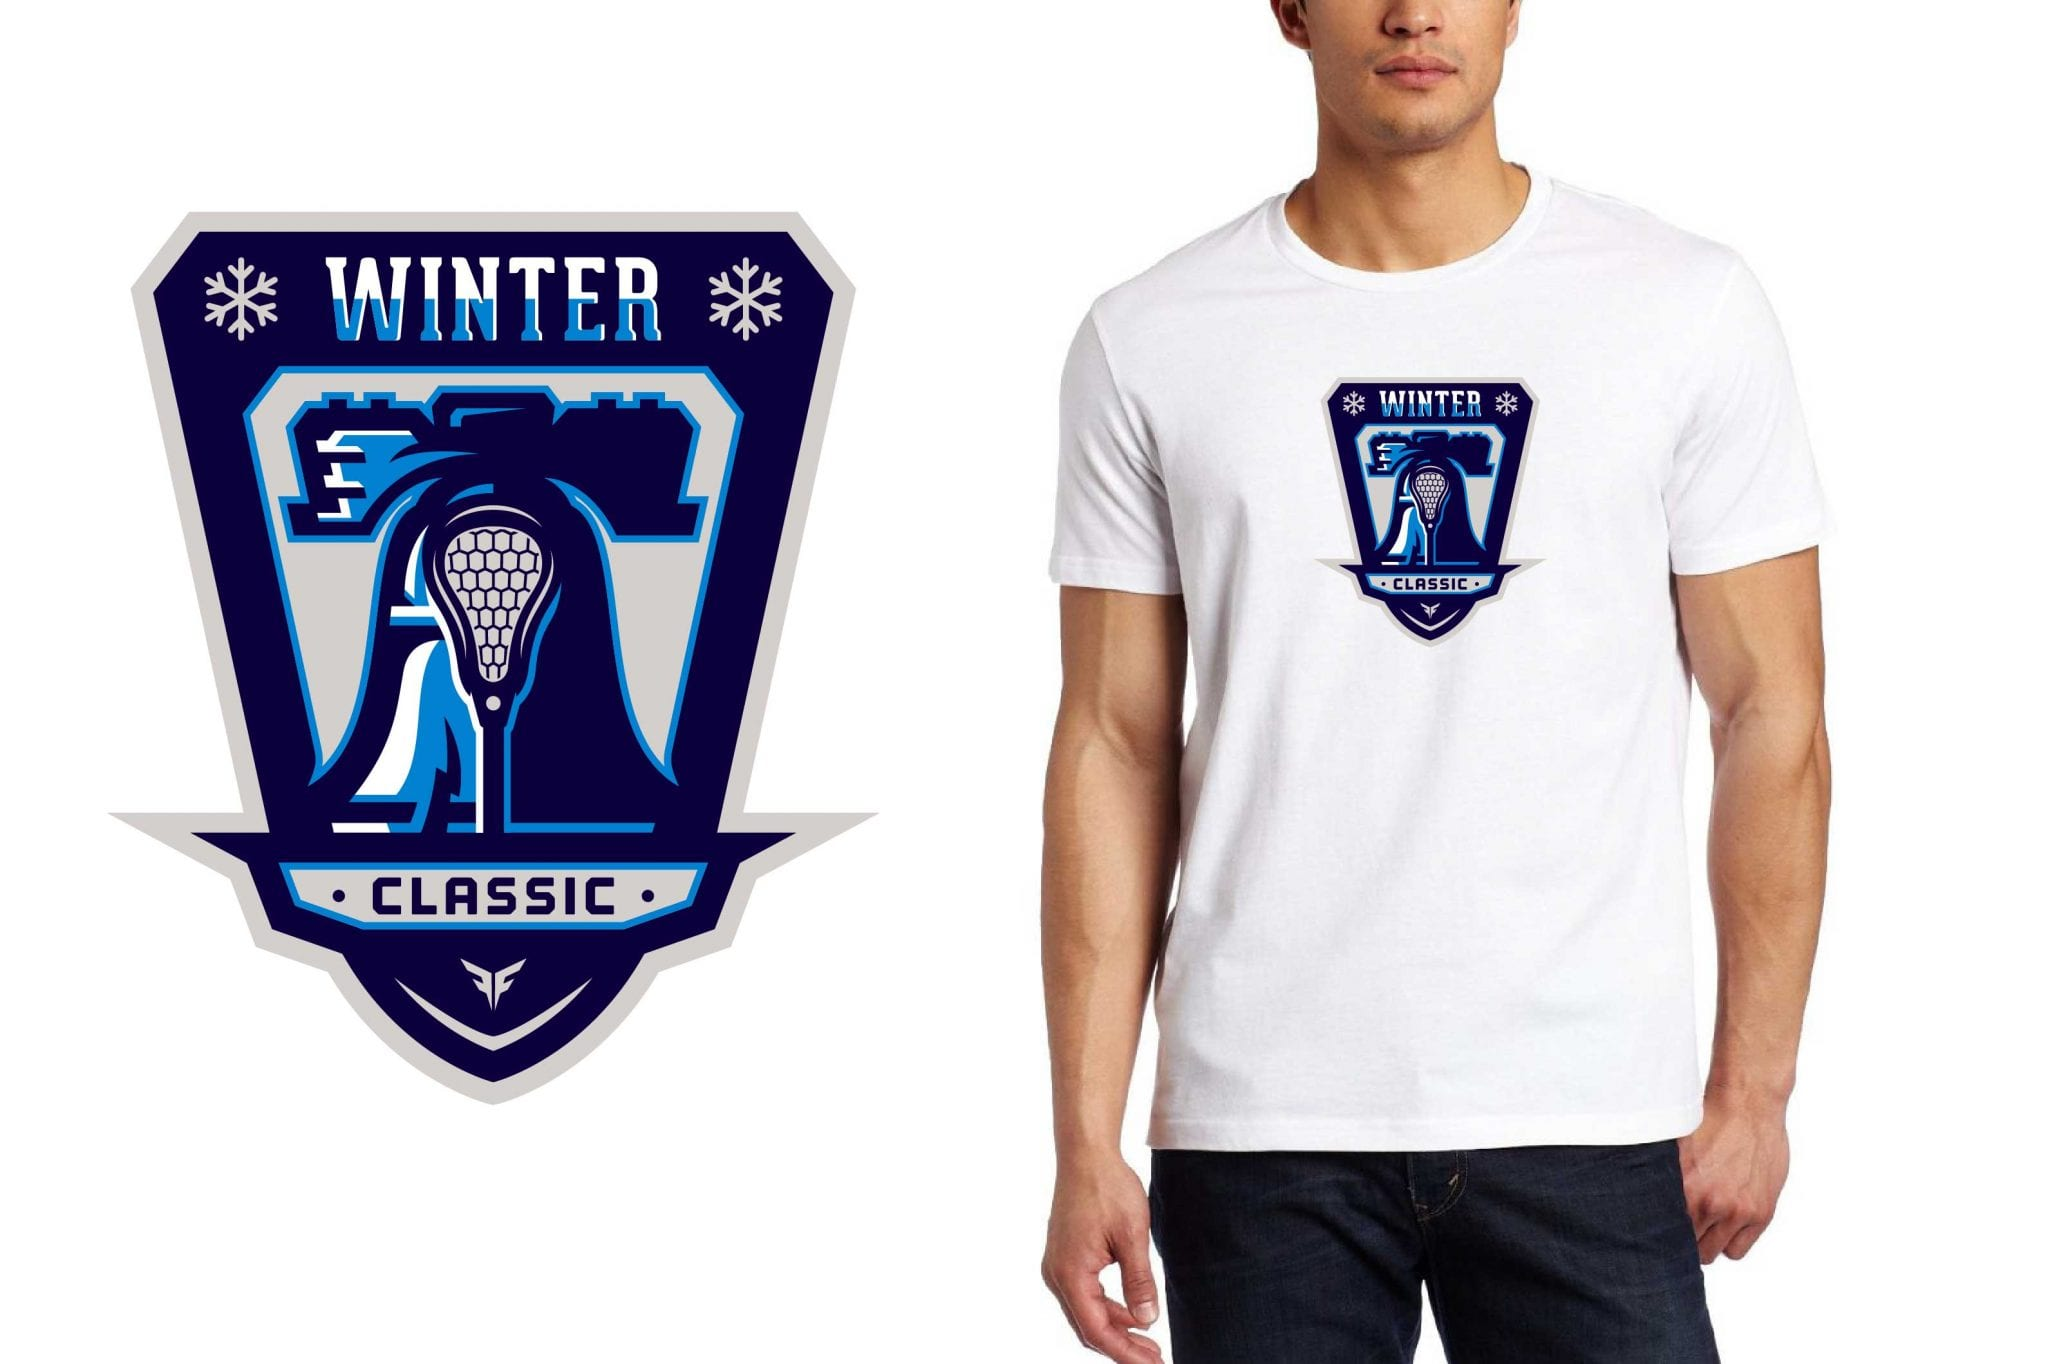 2017 Fusion Winter Classic vector logo design for lacrosse t-shirt UrArtStudio